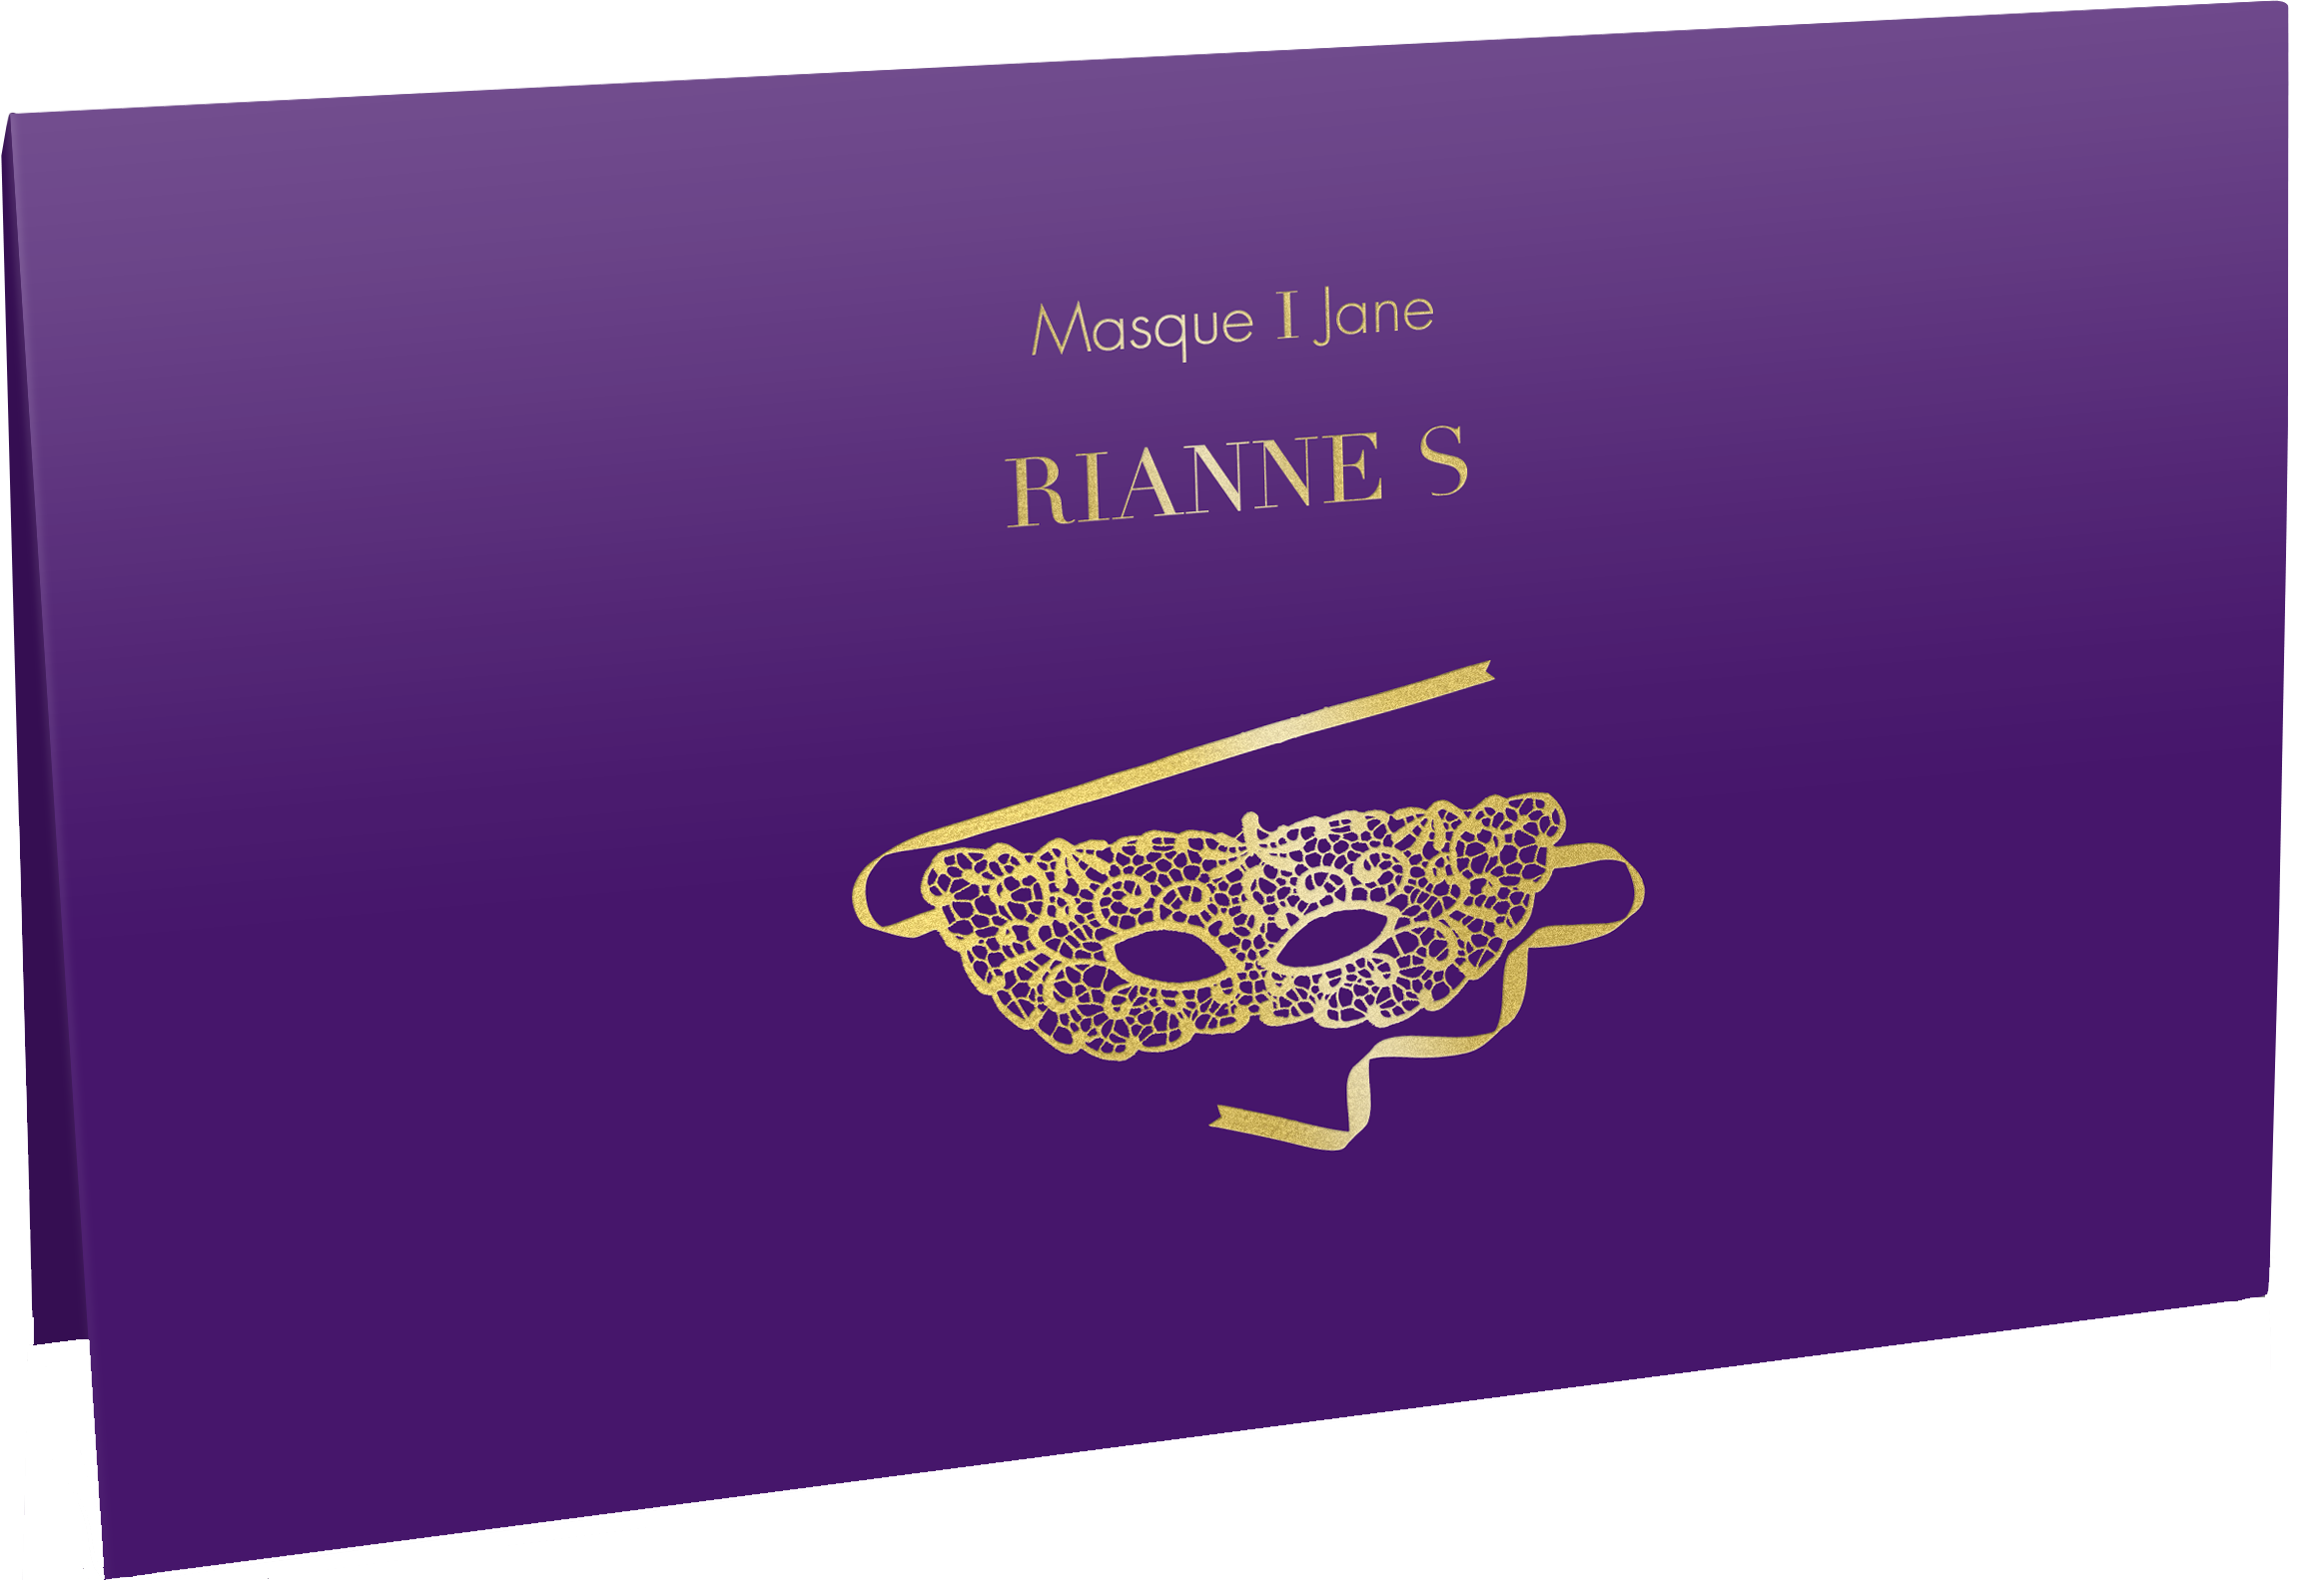 Rianne S Mask 1 - Jane;Rianne S Mask 1 - Jane